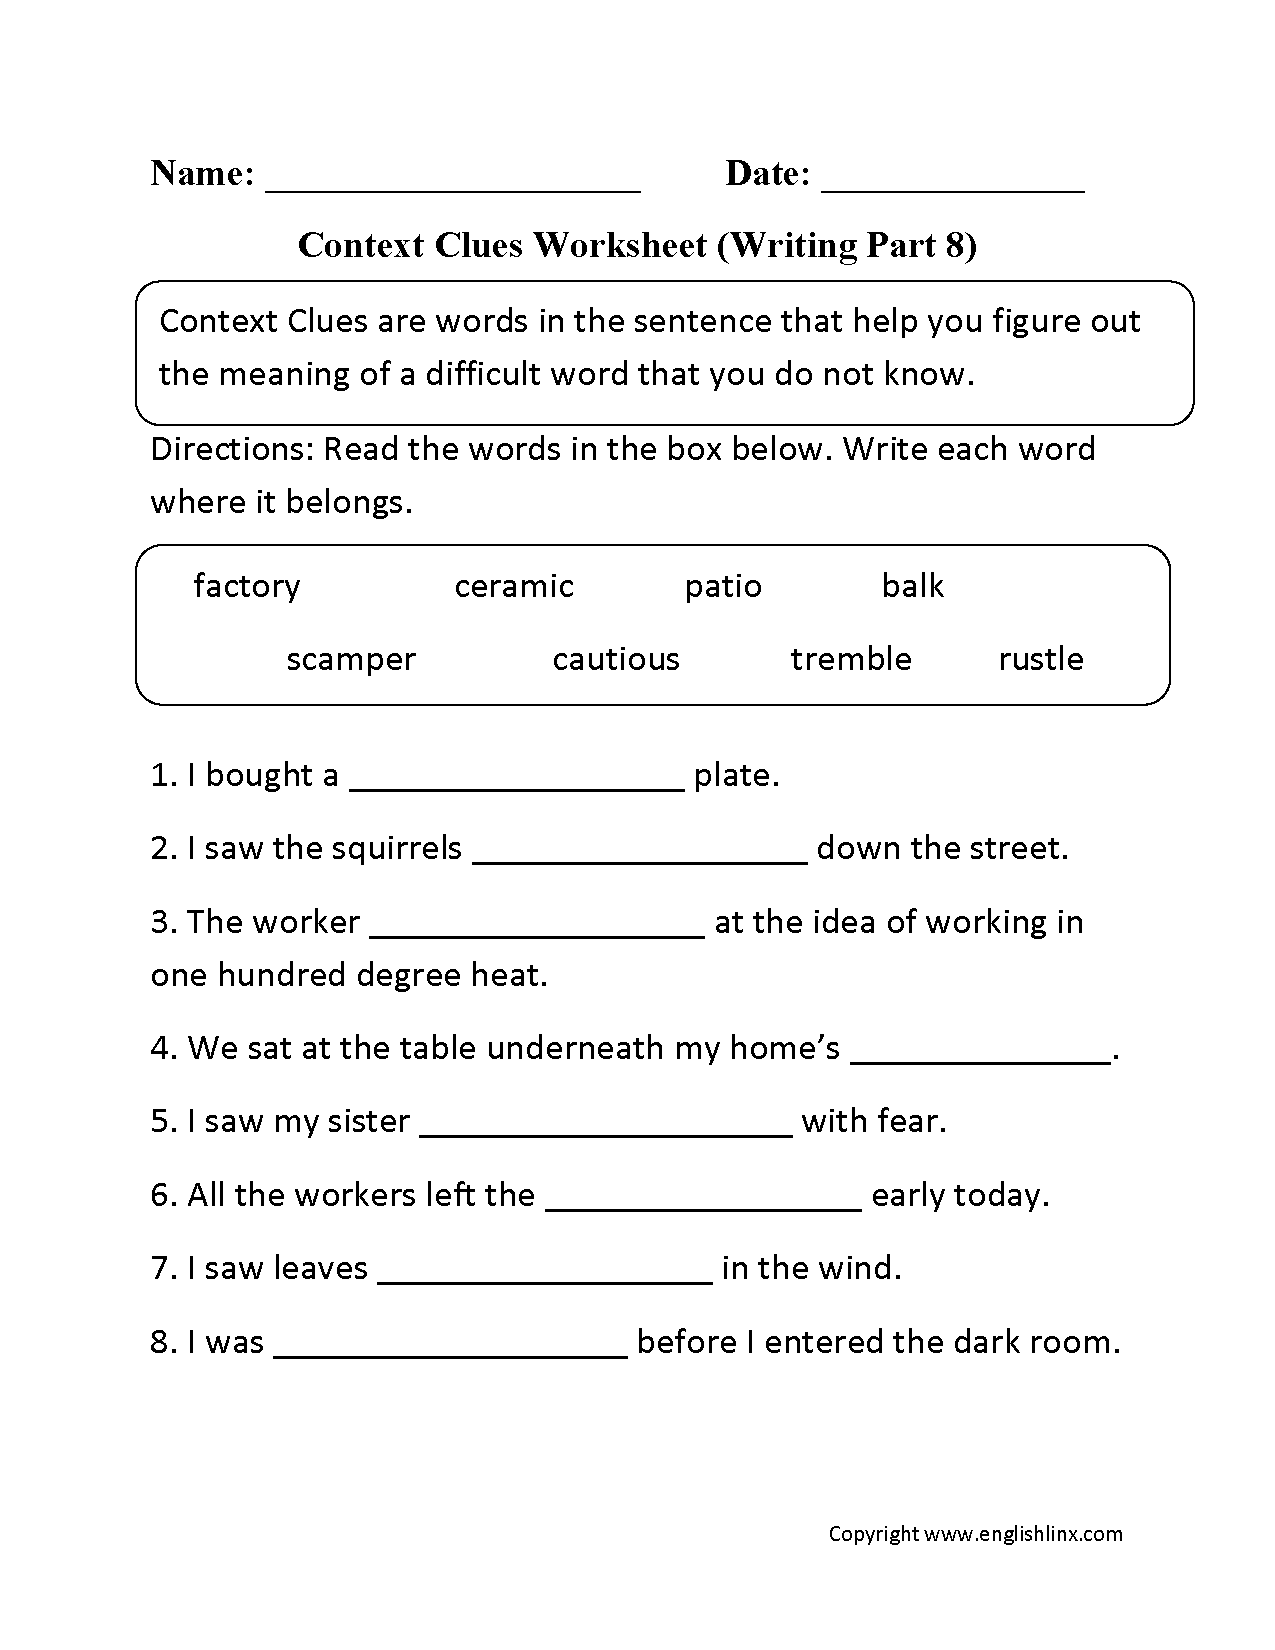 Context Clues Worksheet Writing Part 8 Intermediate   Context clues  worksheets [ 1650 x 1275 Pixel ]